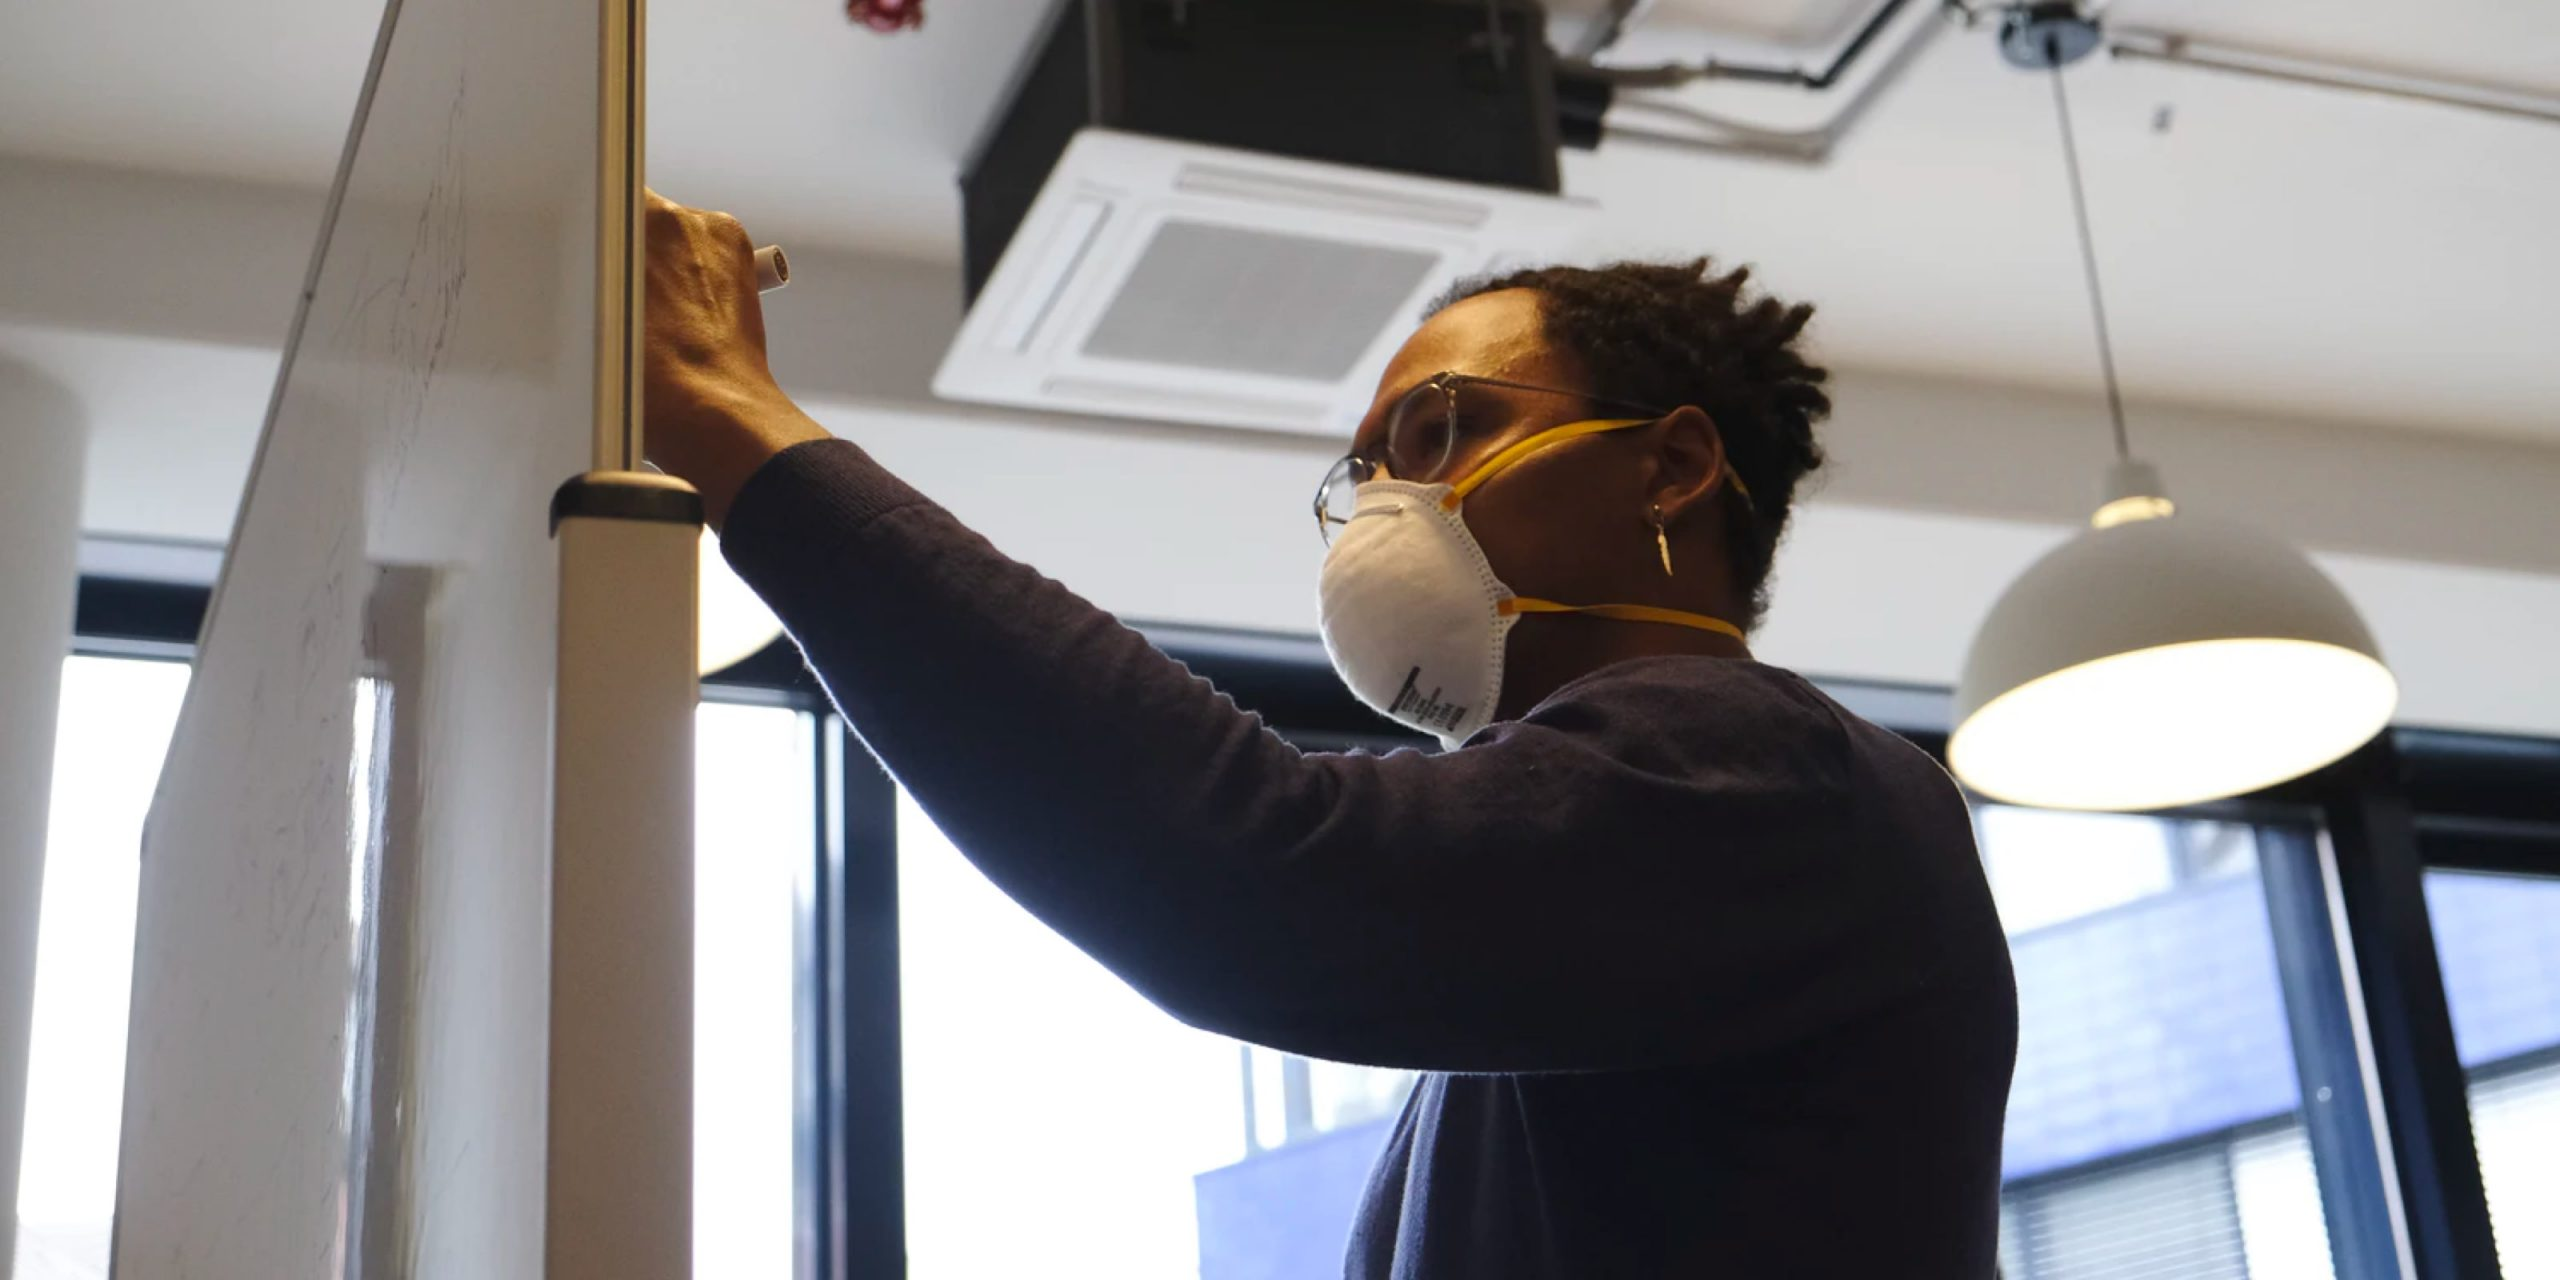 Person working on whiteboard in office space with mask on